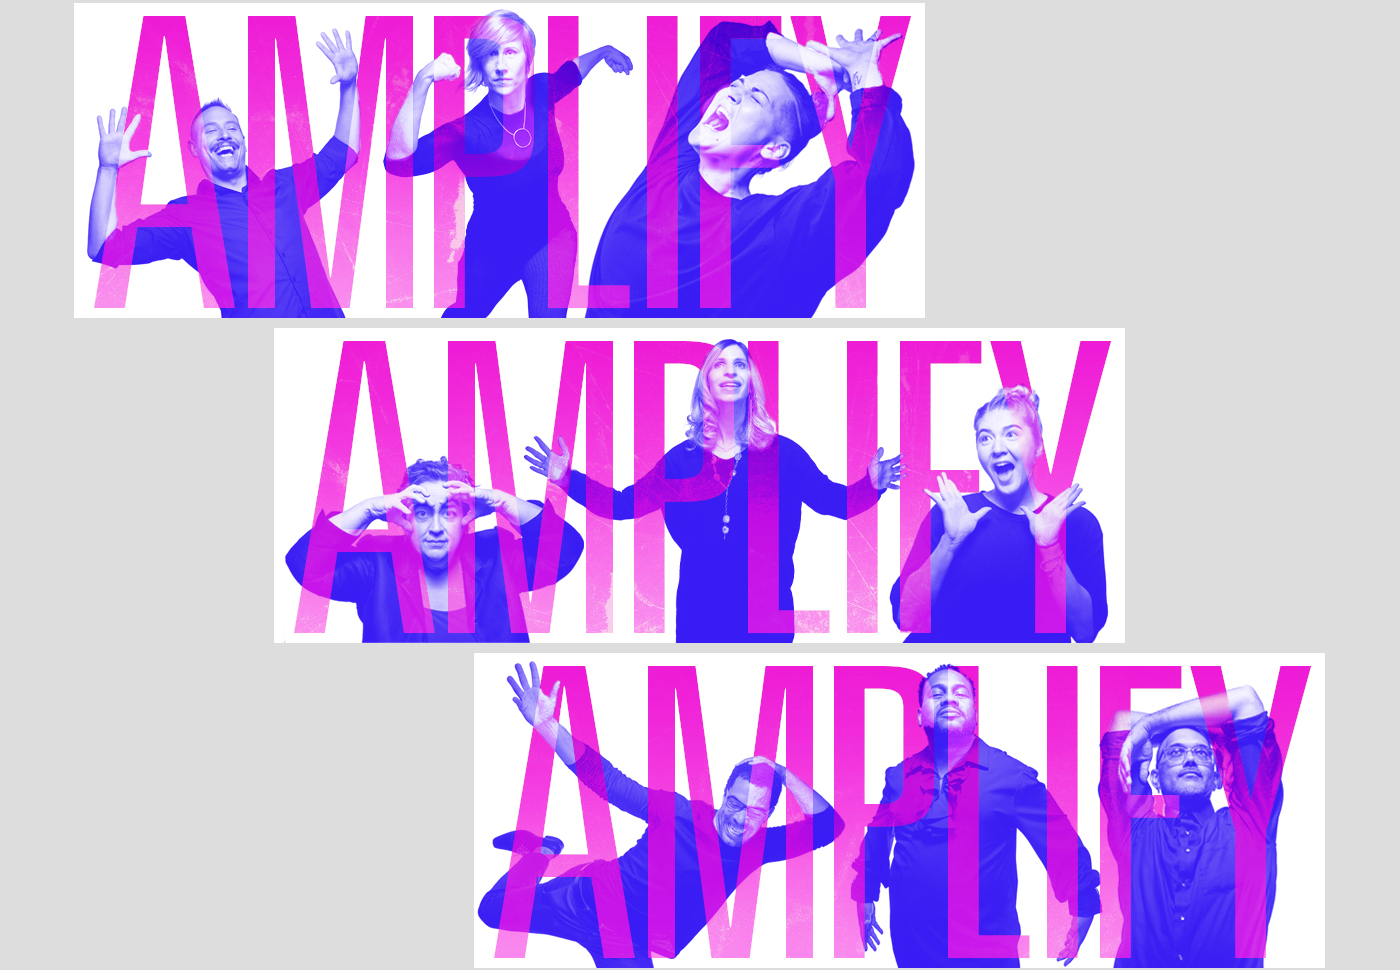 Amplified Opera Amplify Concert Series Facebook banners